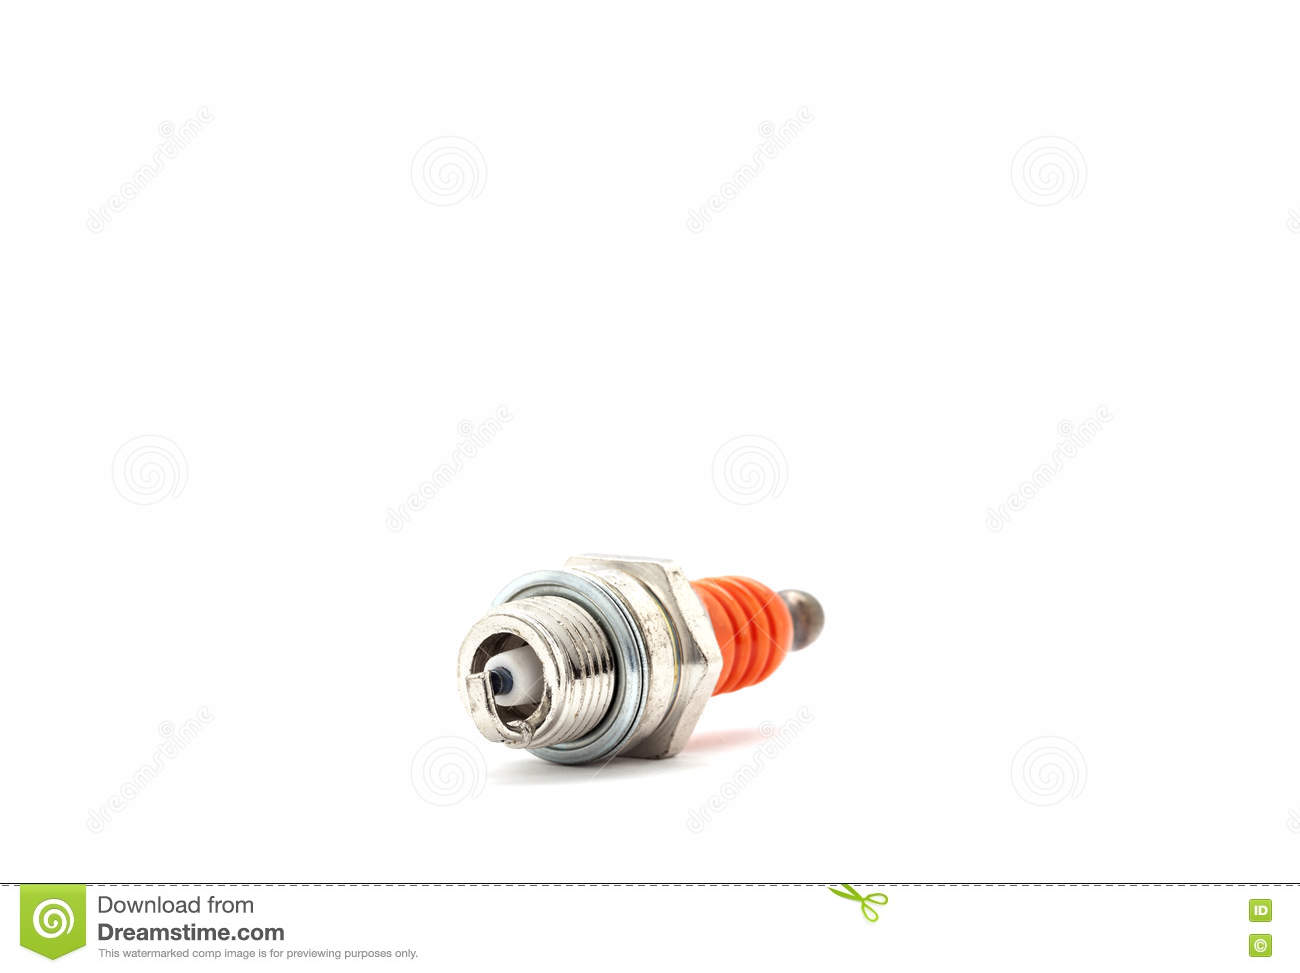 spark plug for Lawn Mower isolated on white background.